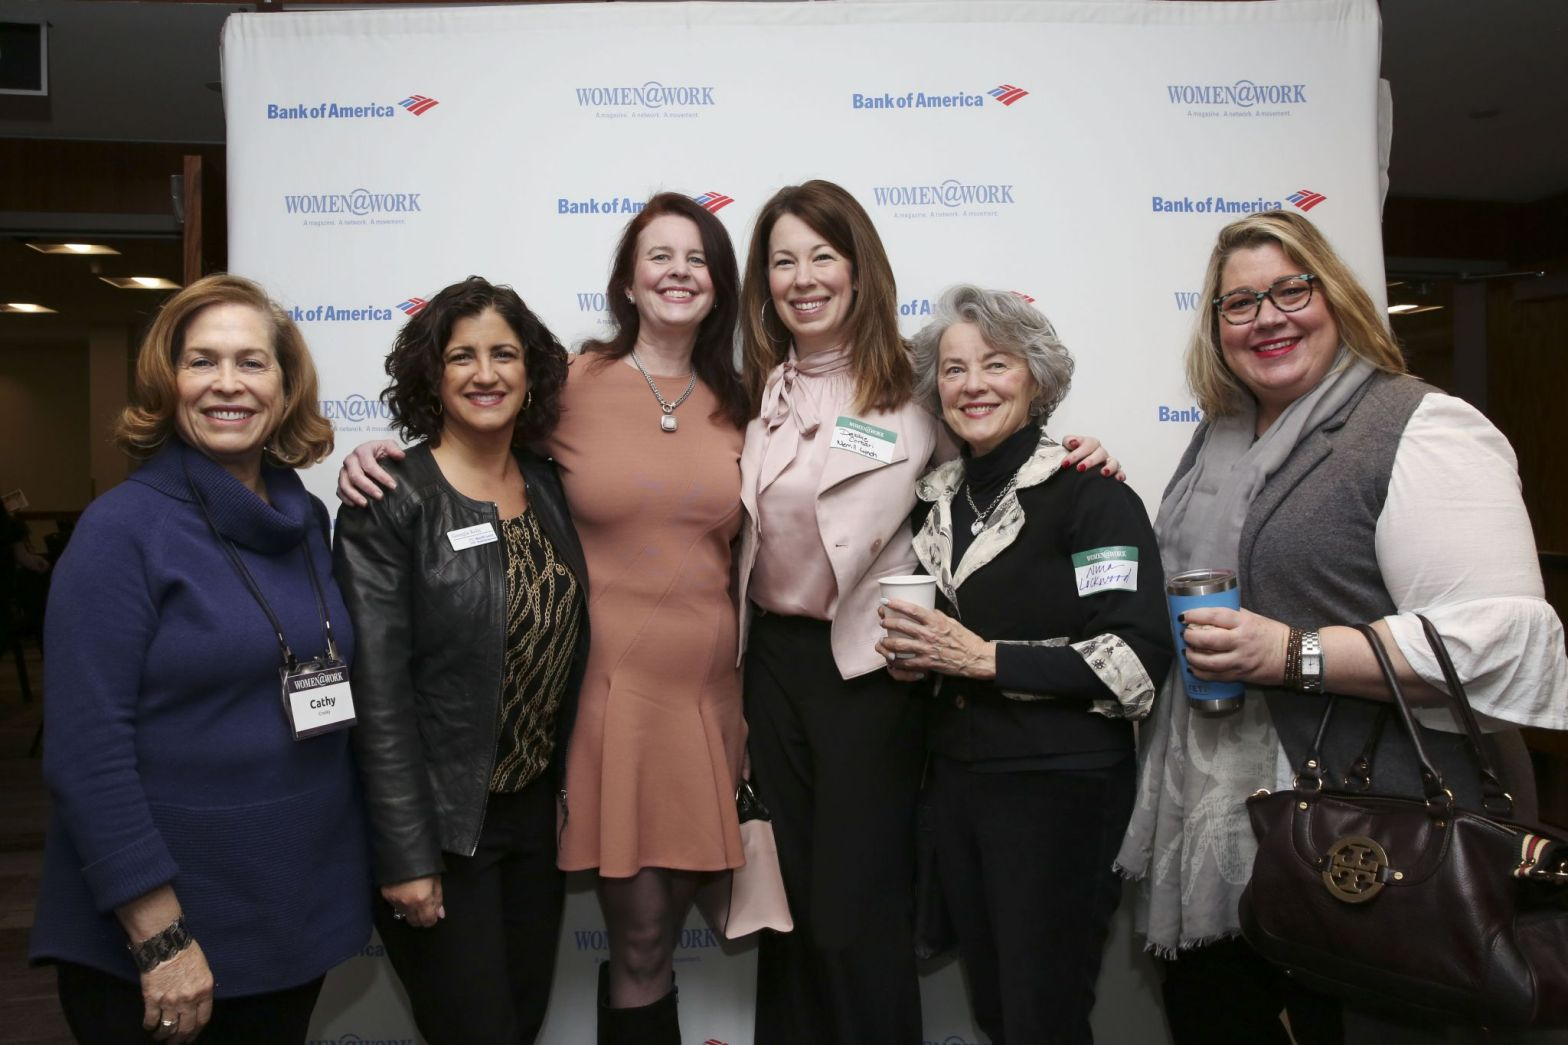 Photo of a group of smiling women in front of the logo'd step and repeat. This photo was taken while attending the Women at Work (Women@work) #networking event in February at the Hearst Times Union building located off of Wolf Road in Albany NY.